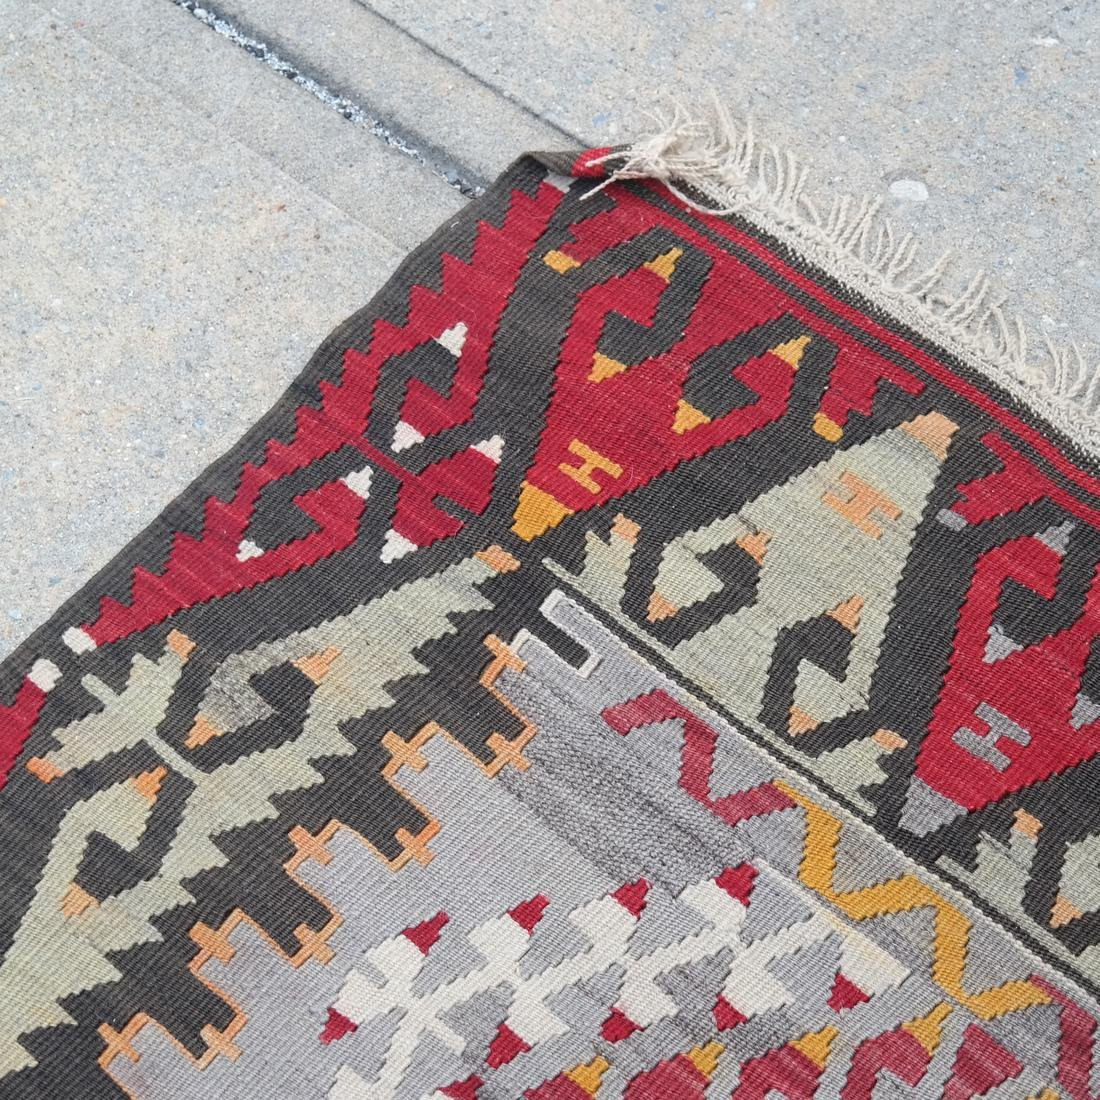 Central Asian Rug, Gray & Red - 3